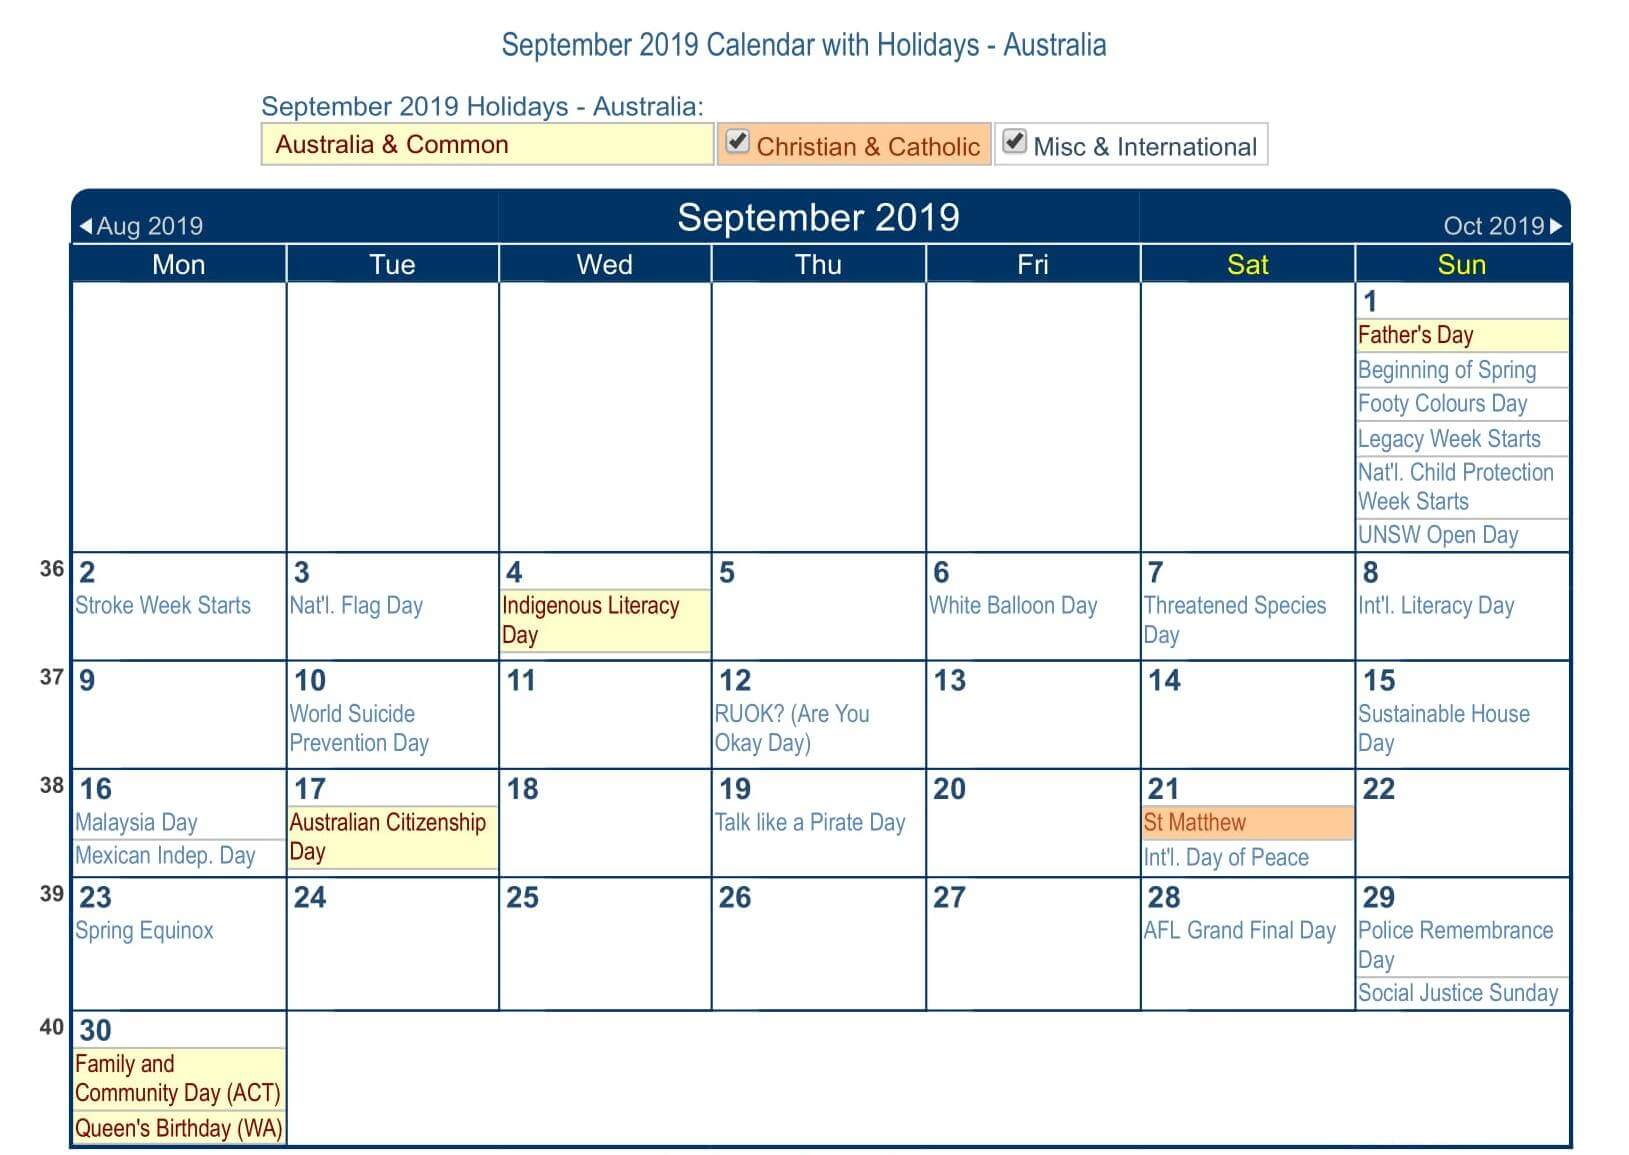 September 2019 Calendar With Australia Public Holidays